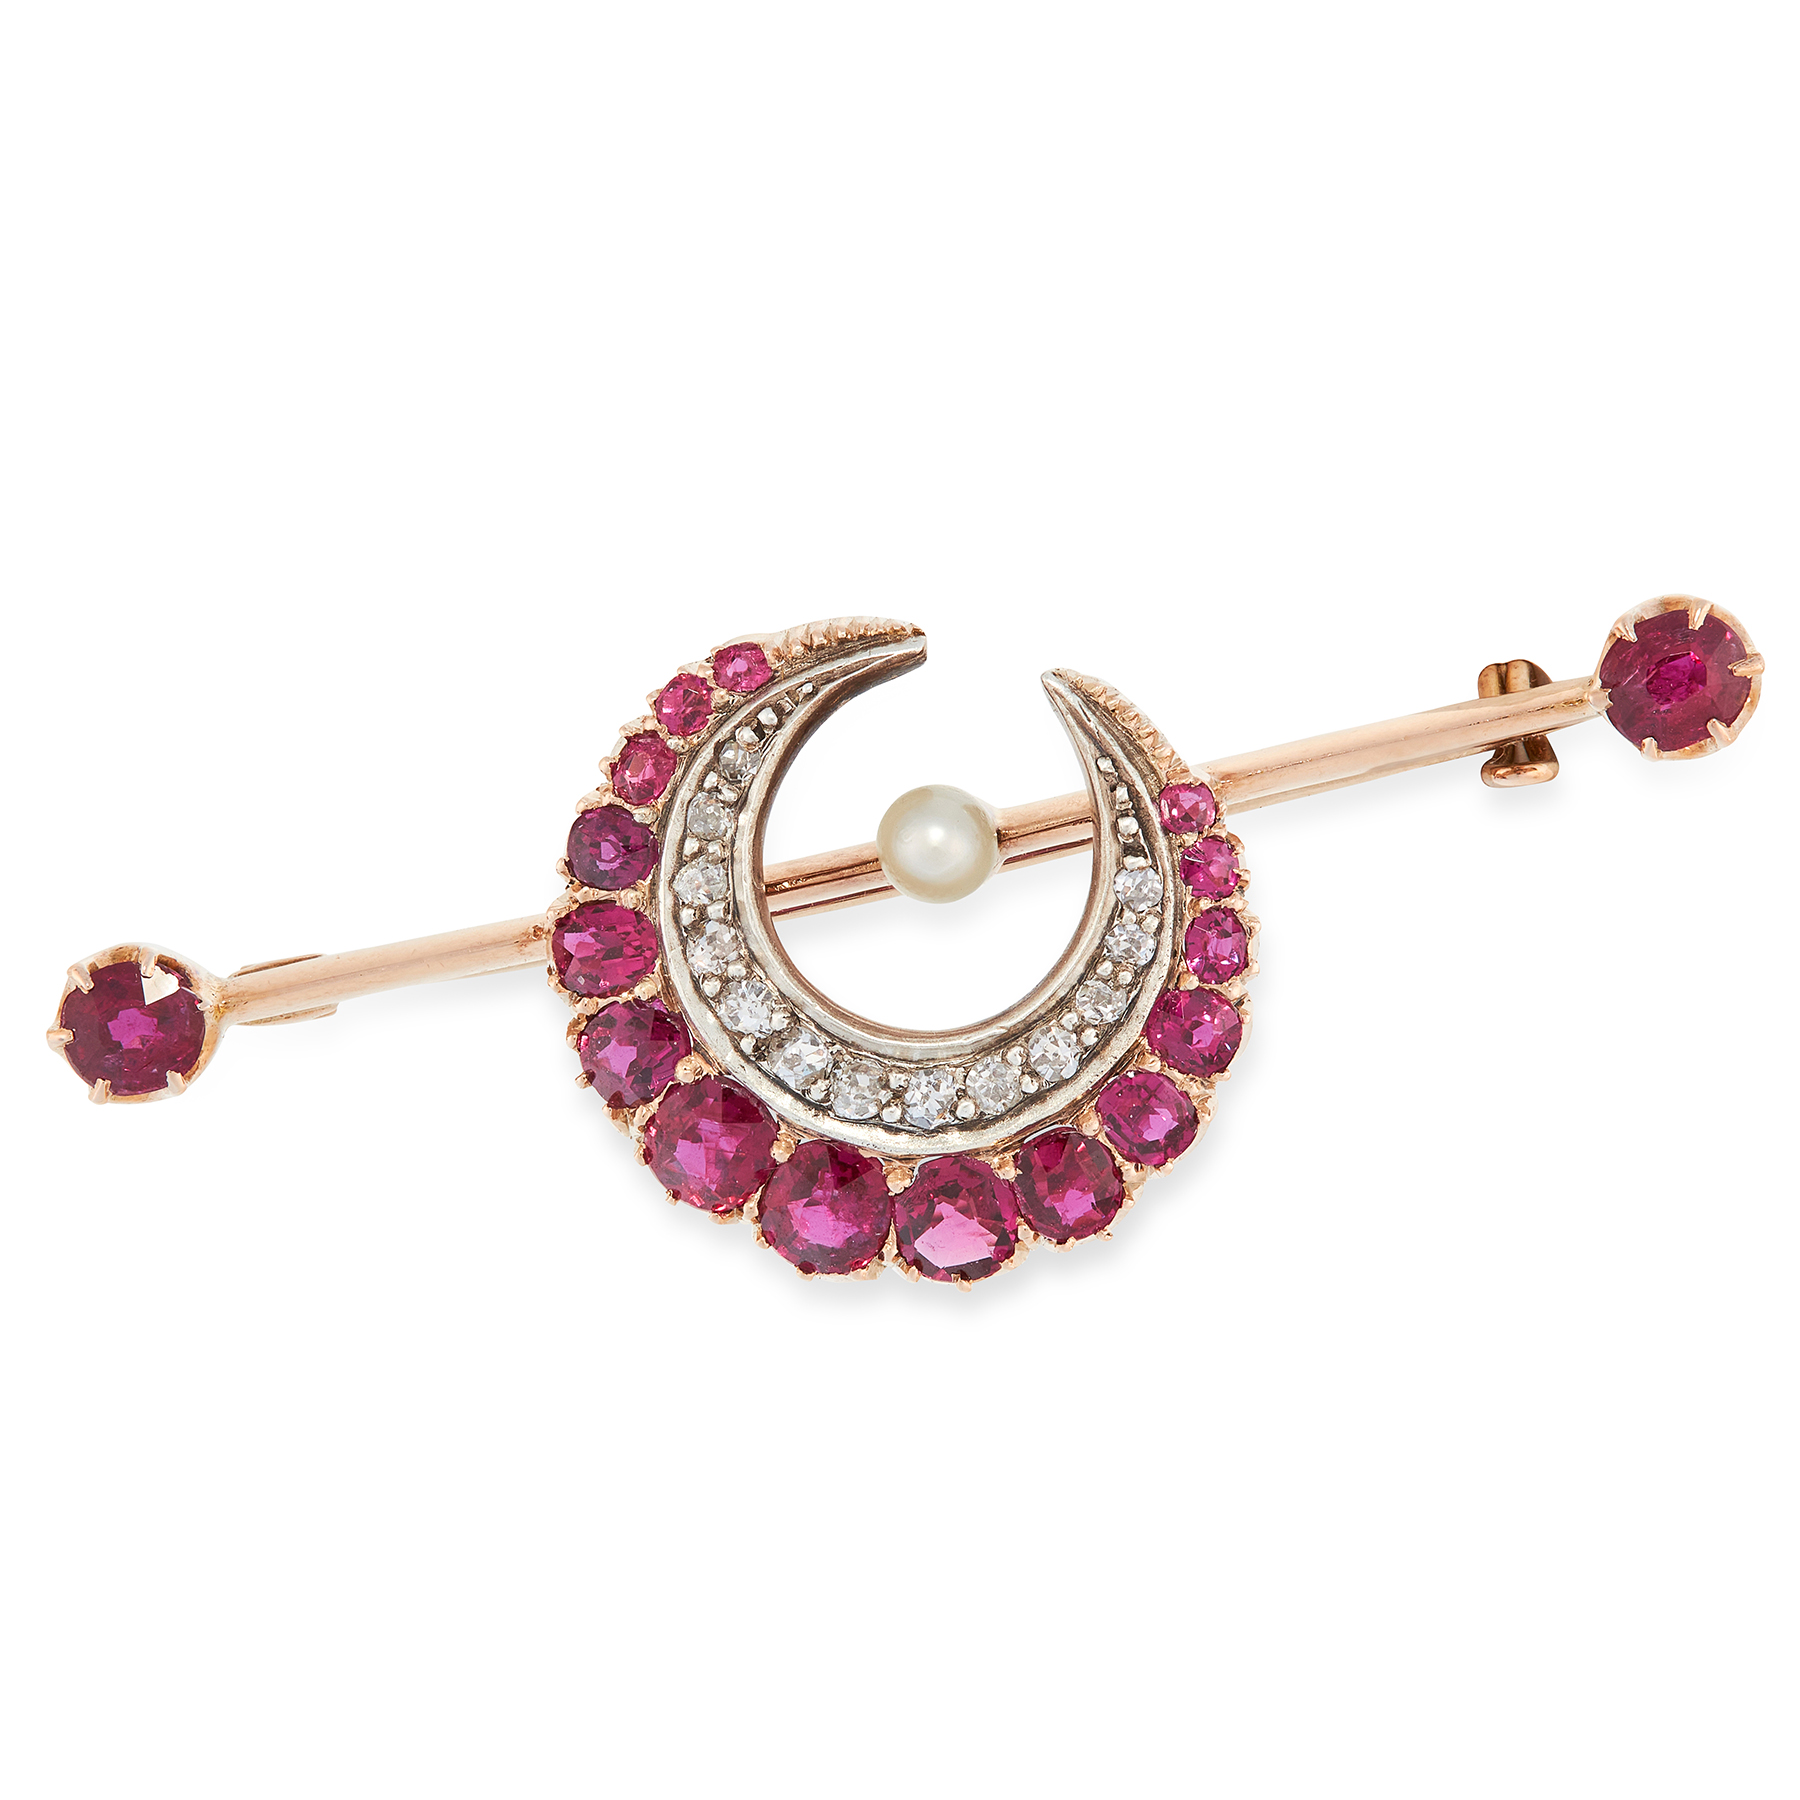 AN ANTIQUE VICTORIAN RUBY, DIAMOND AND PEARL CRESCENT MOON BROOCH in yellow gold, in the form of a